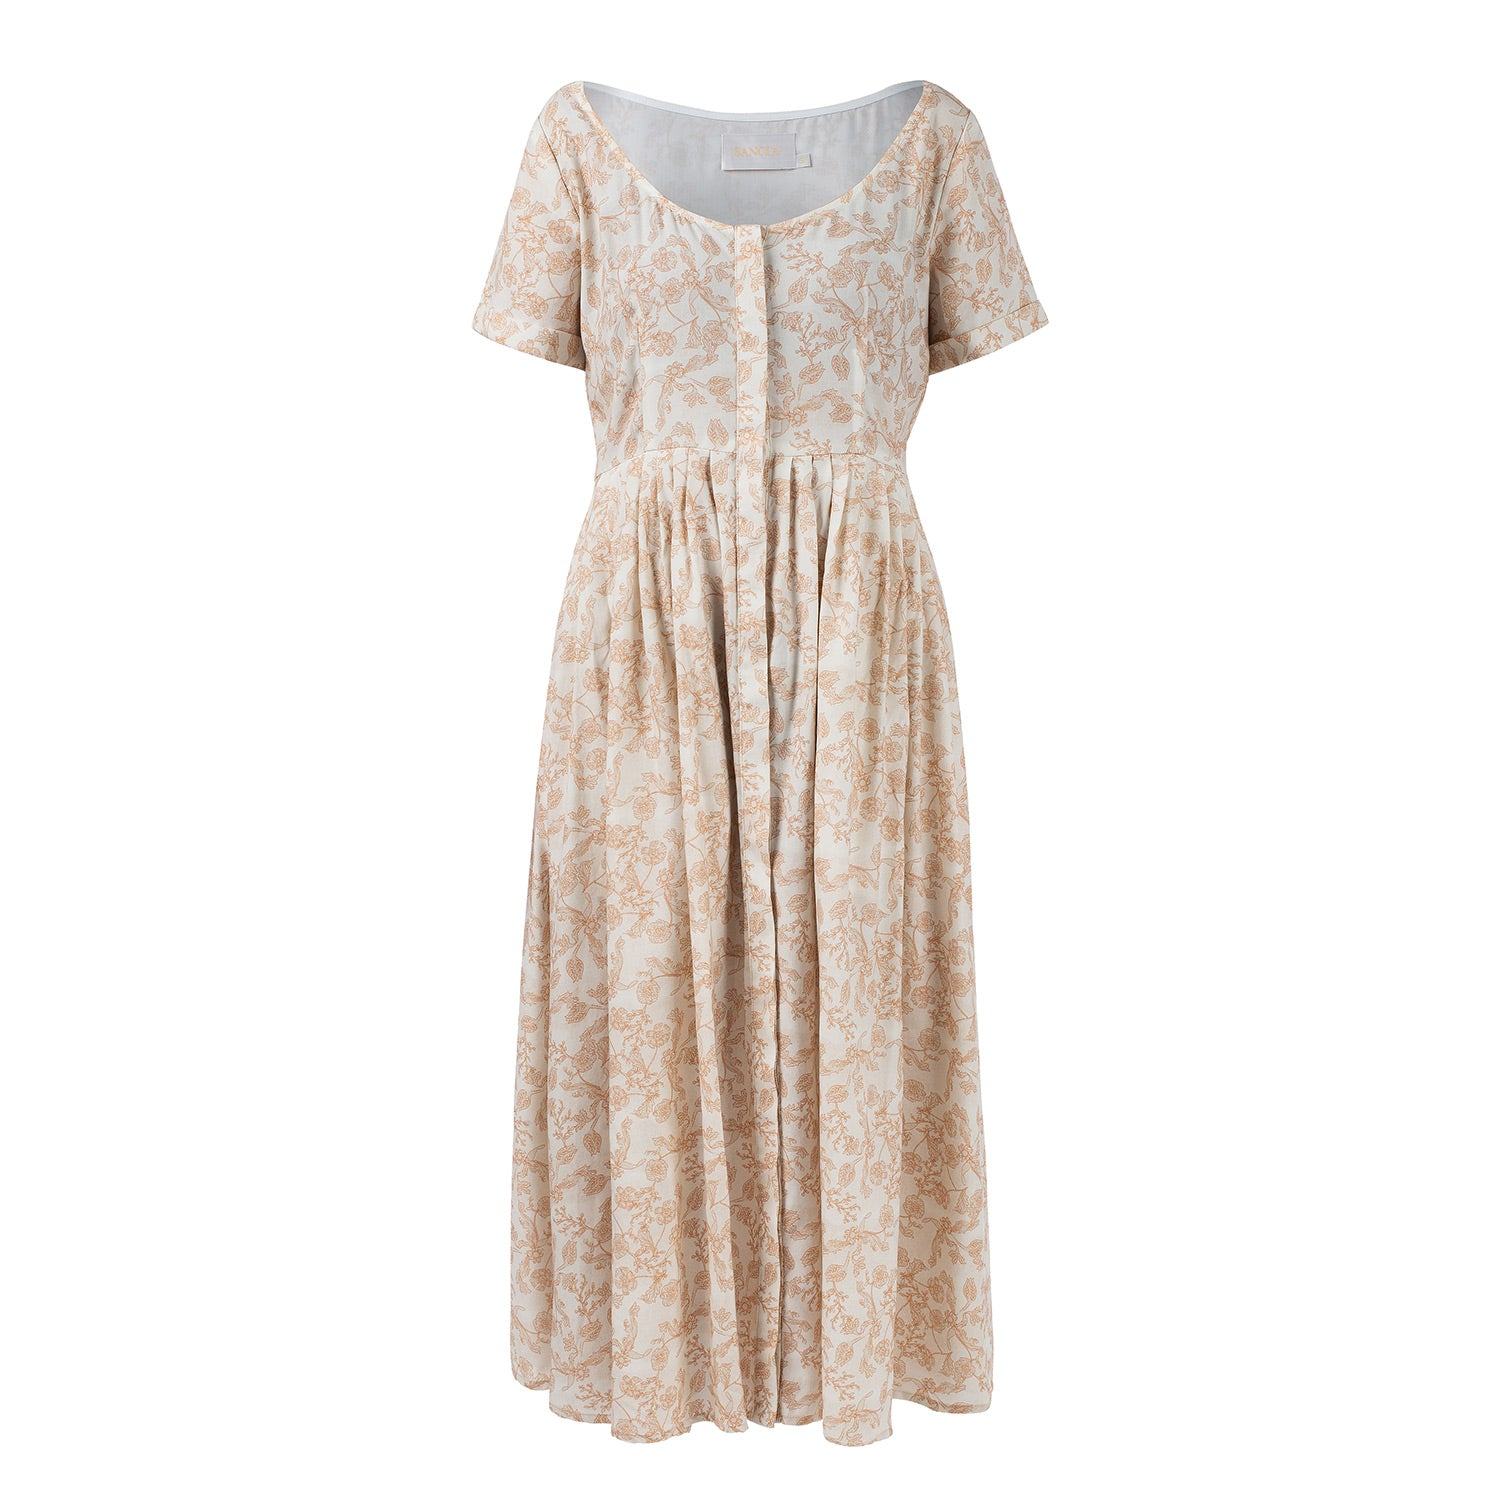 THE MARJETA DRESS